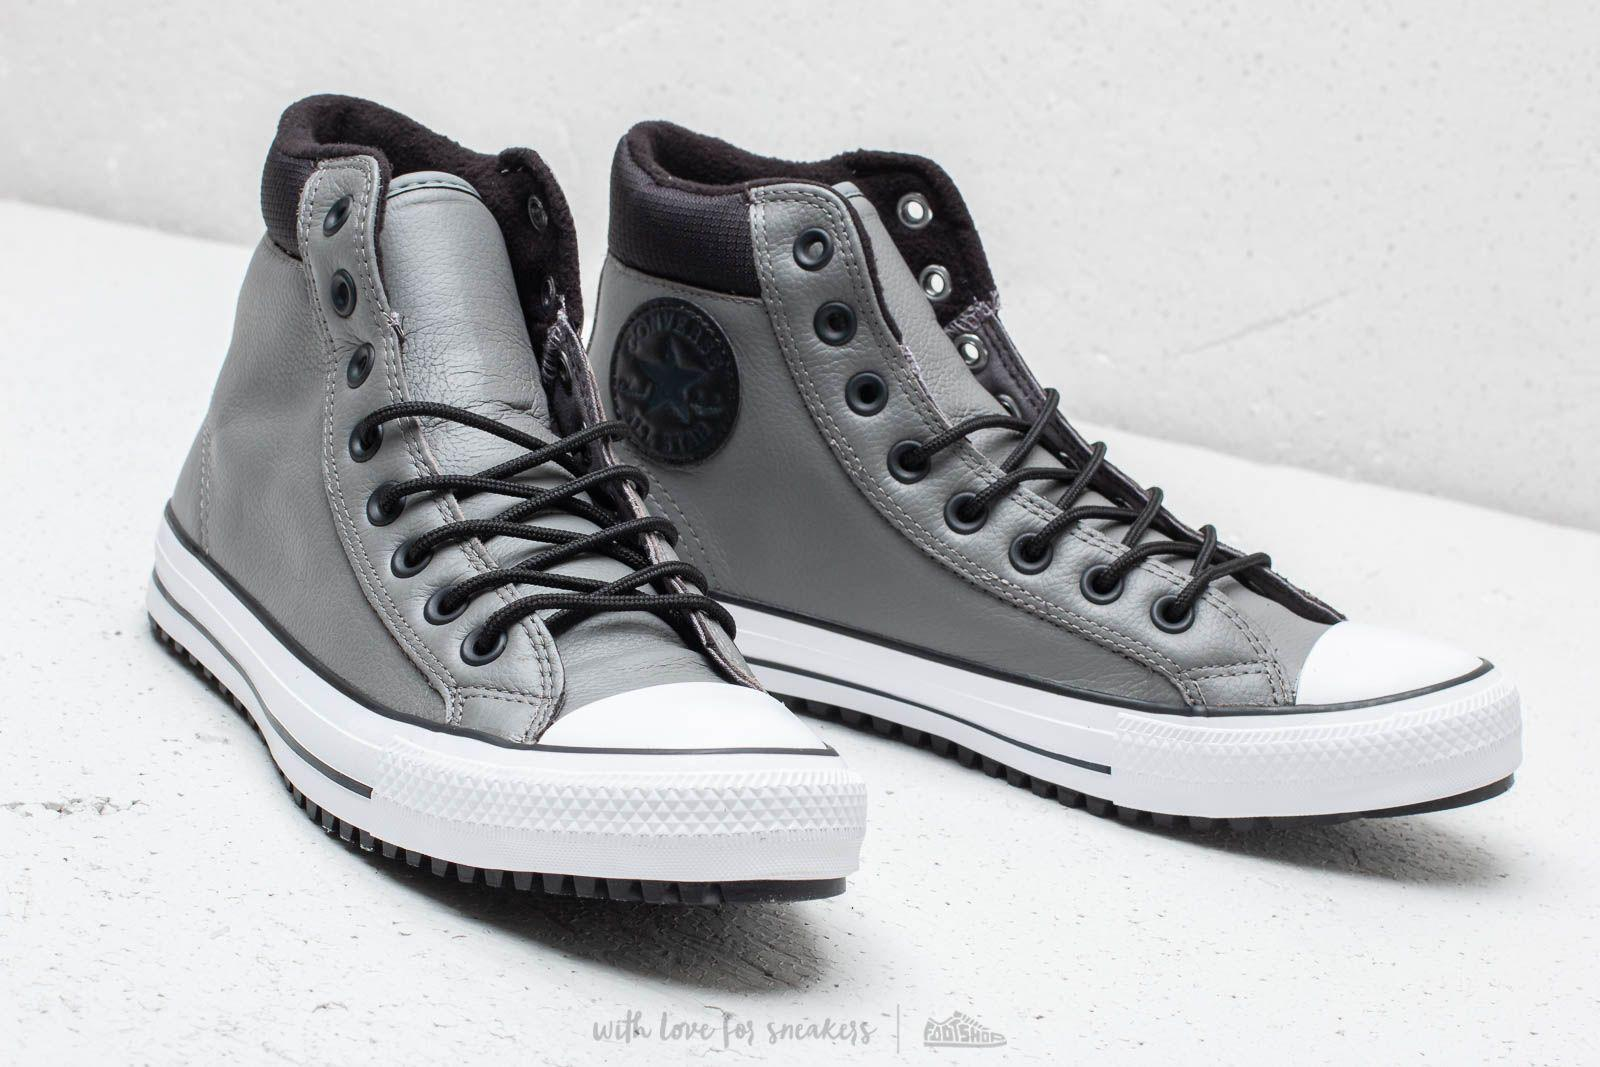 4e8f5208b74f8b Converse - Chuck Taylor All Star Pc Boot High Mason  Black  White for Men.  View fullscreen